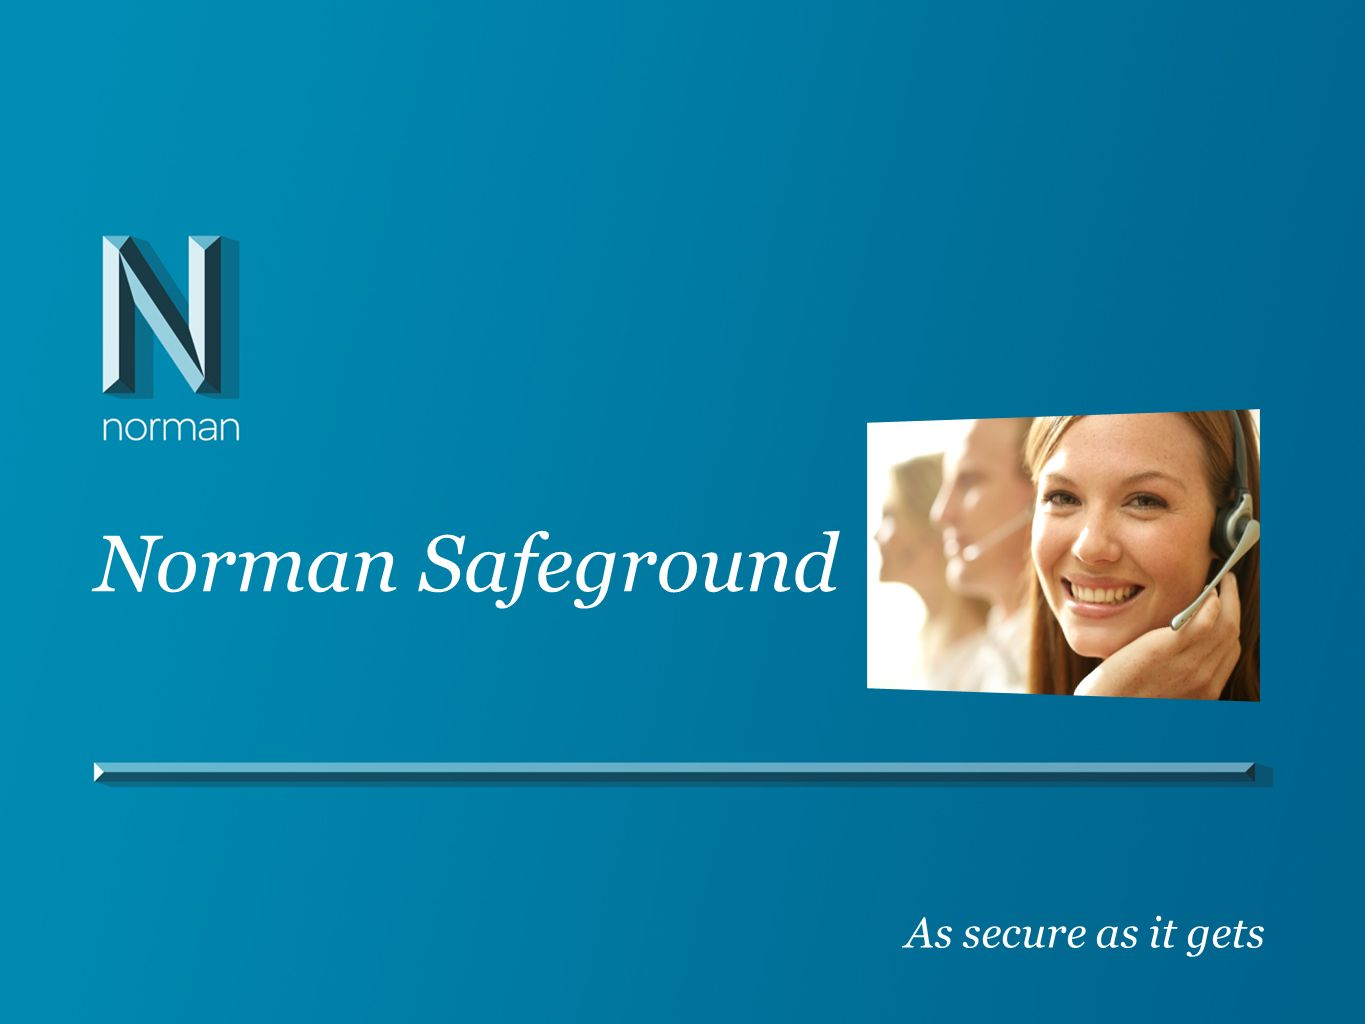 Norman Safeground As secure as it gets